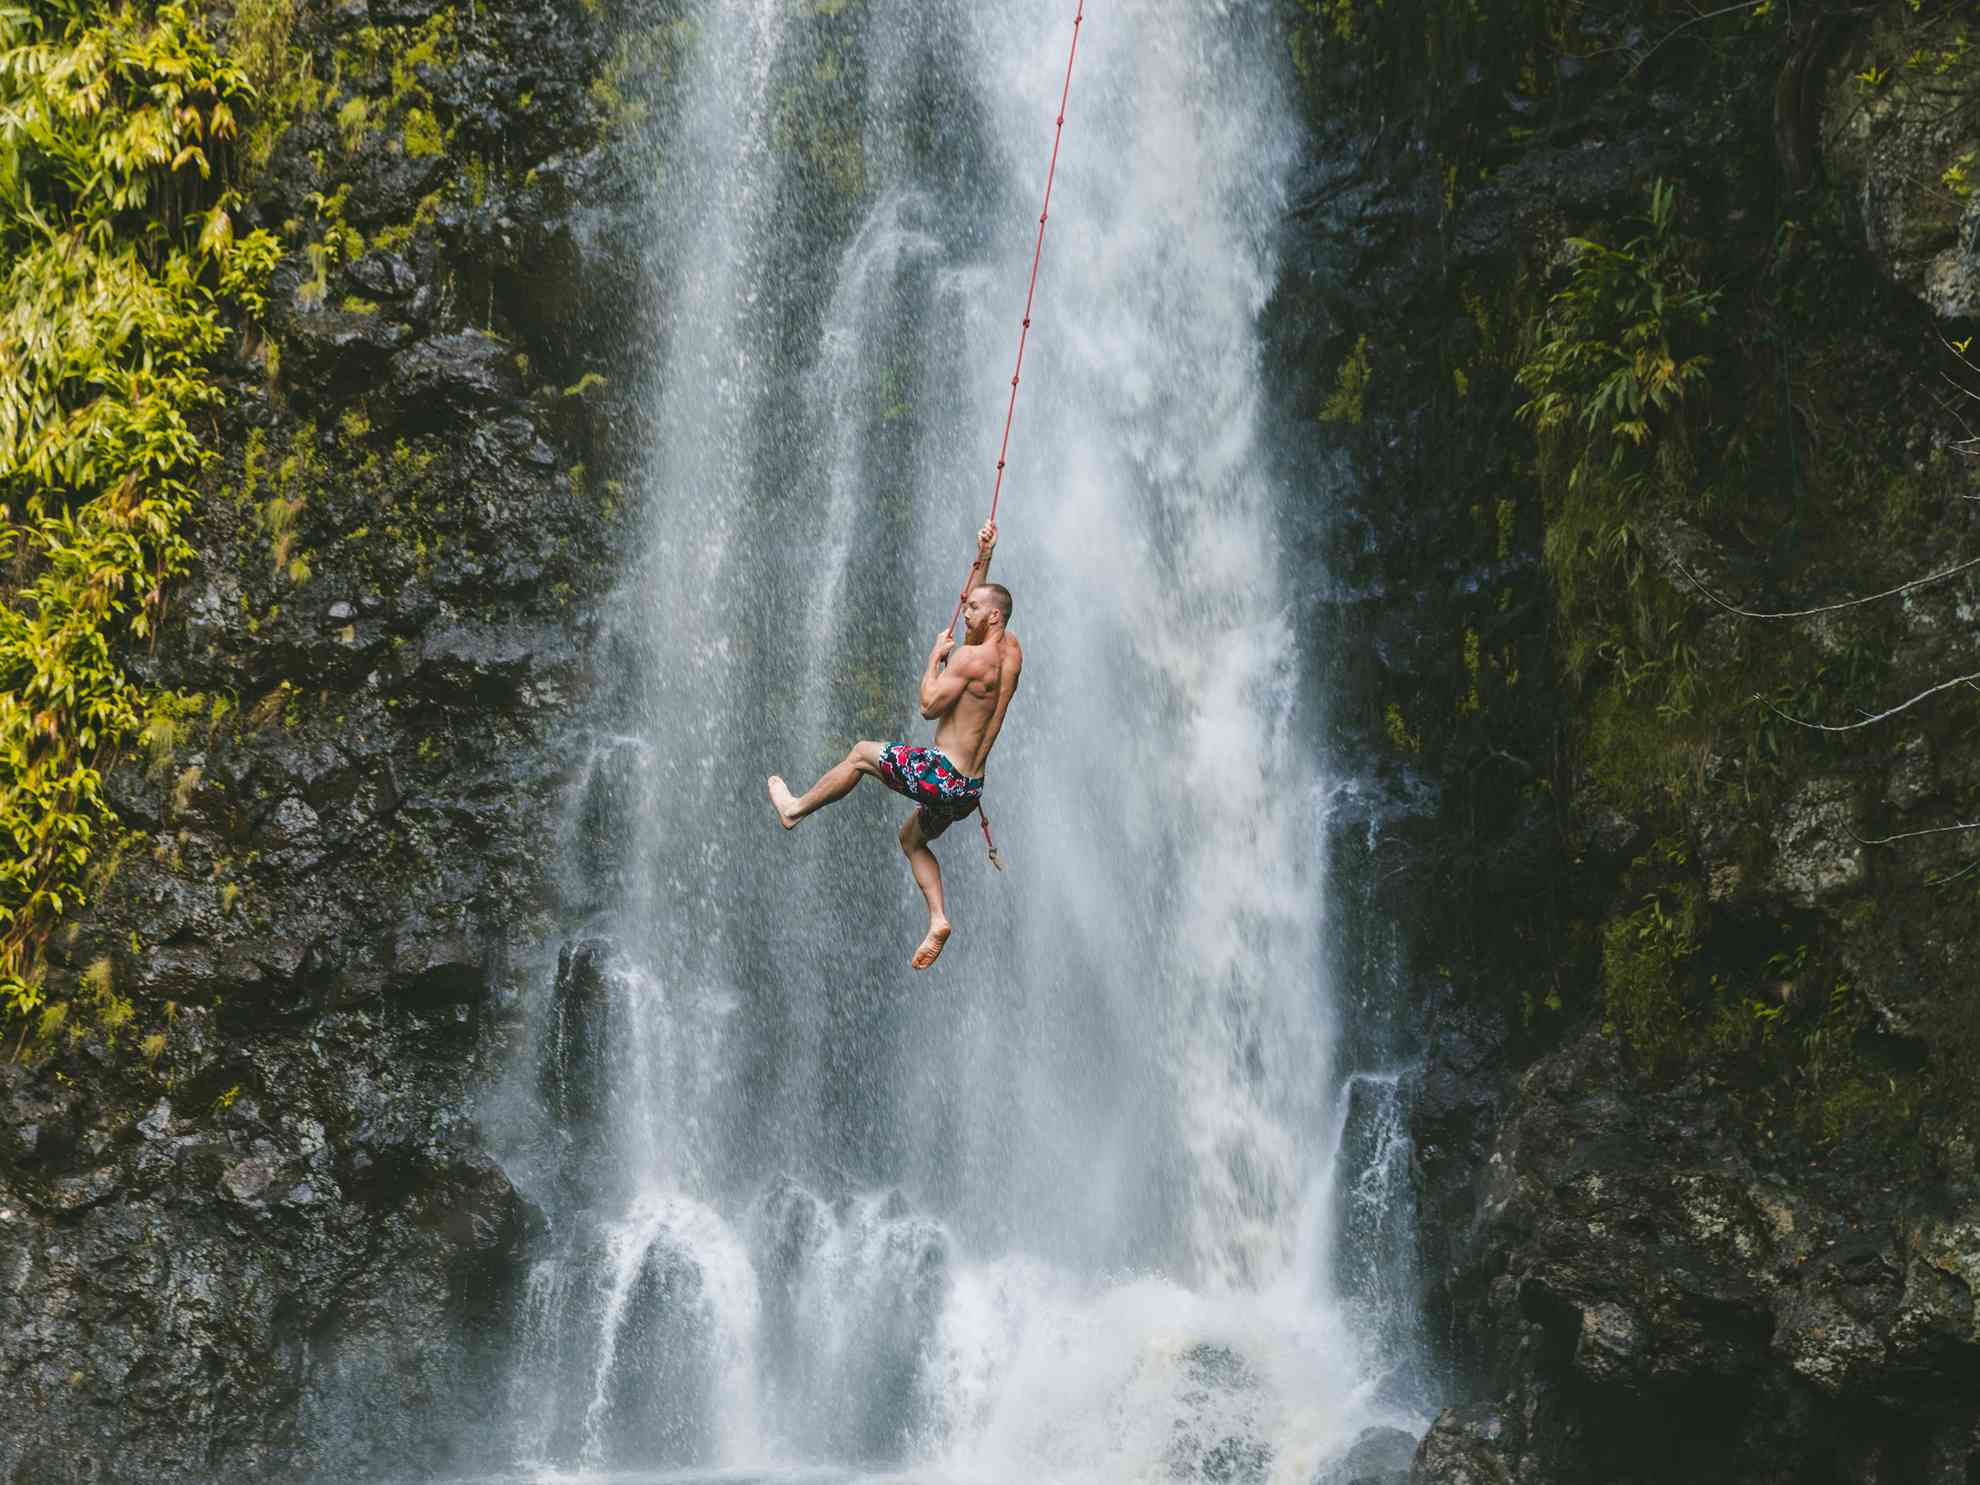 Man hanging onto rope swing at Waimea falls. One of the things to do on the big island.